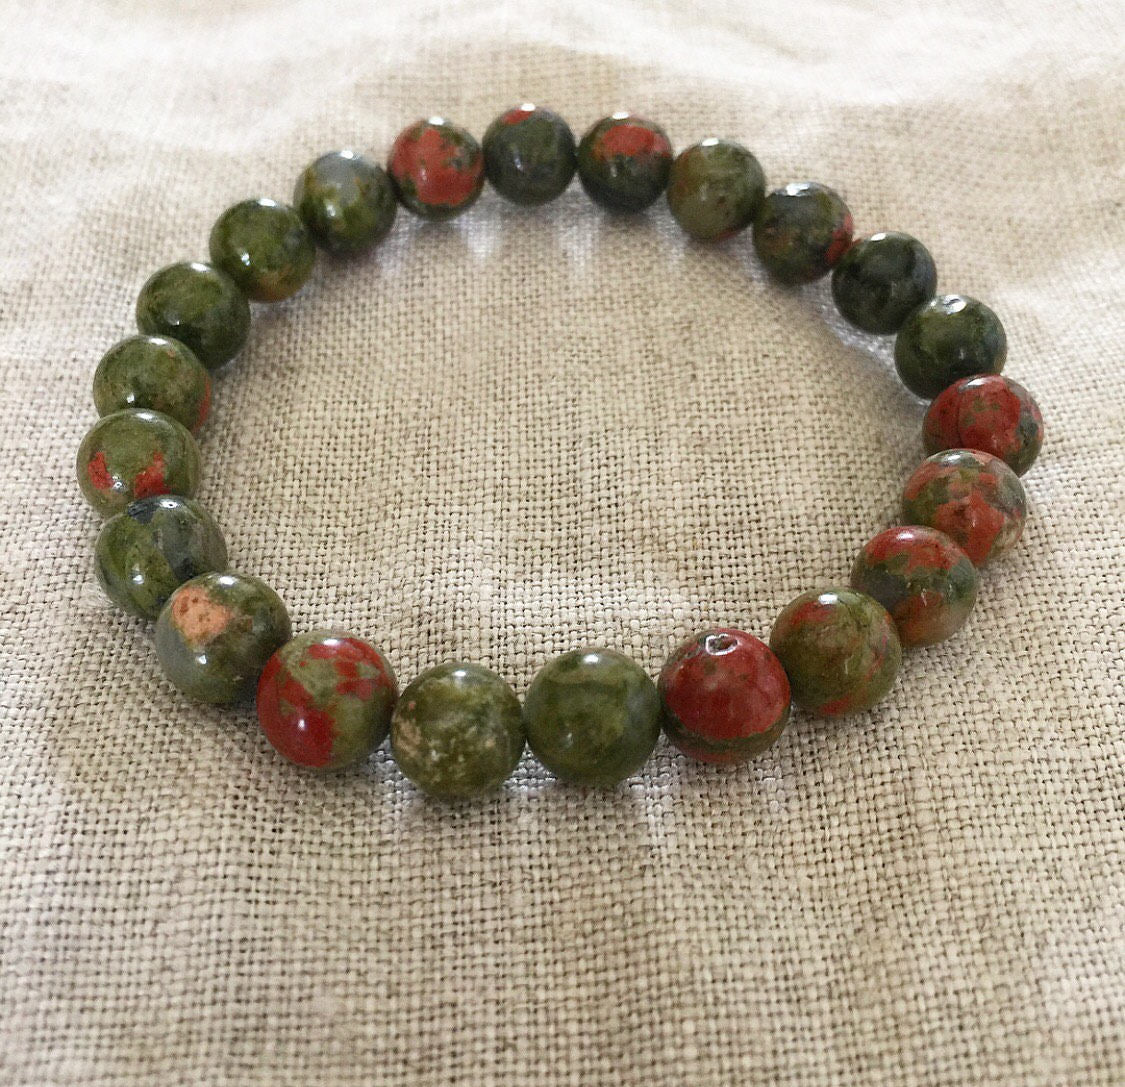 Stone Bead Bracelets - Redeemed Jewelry